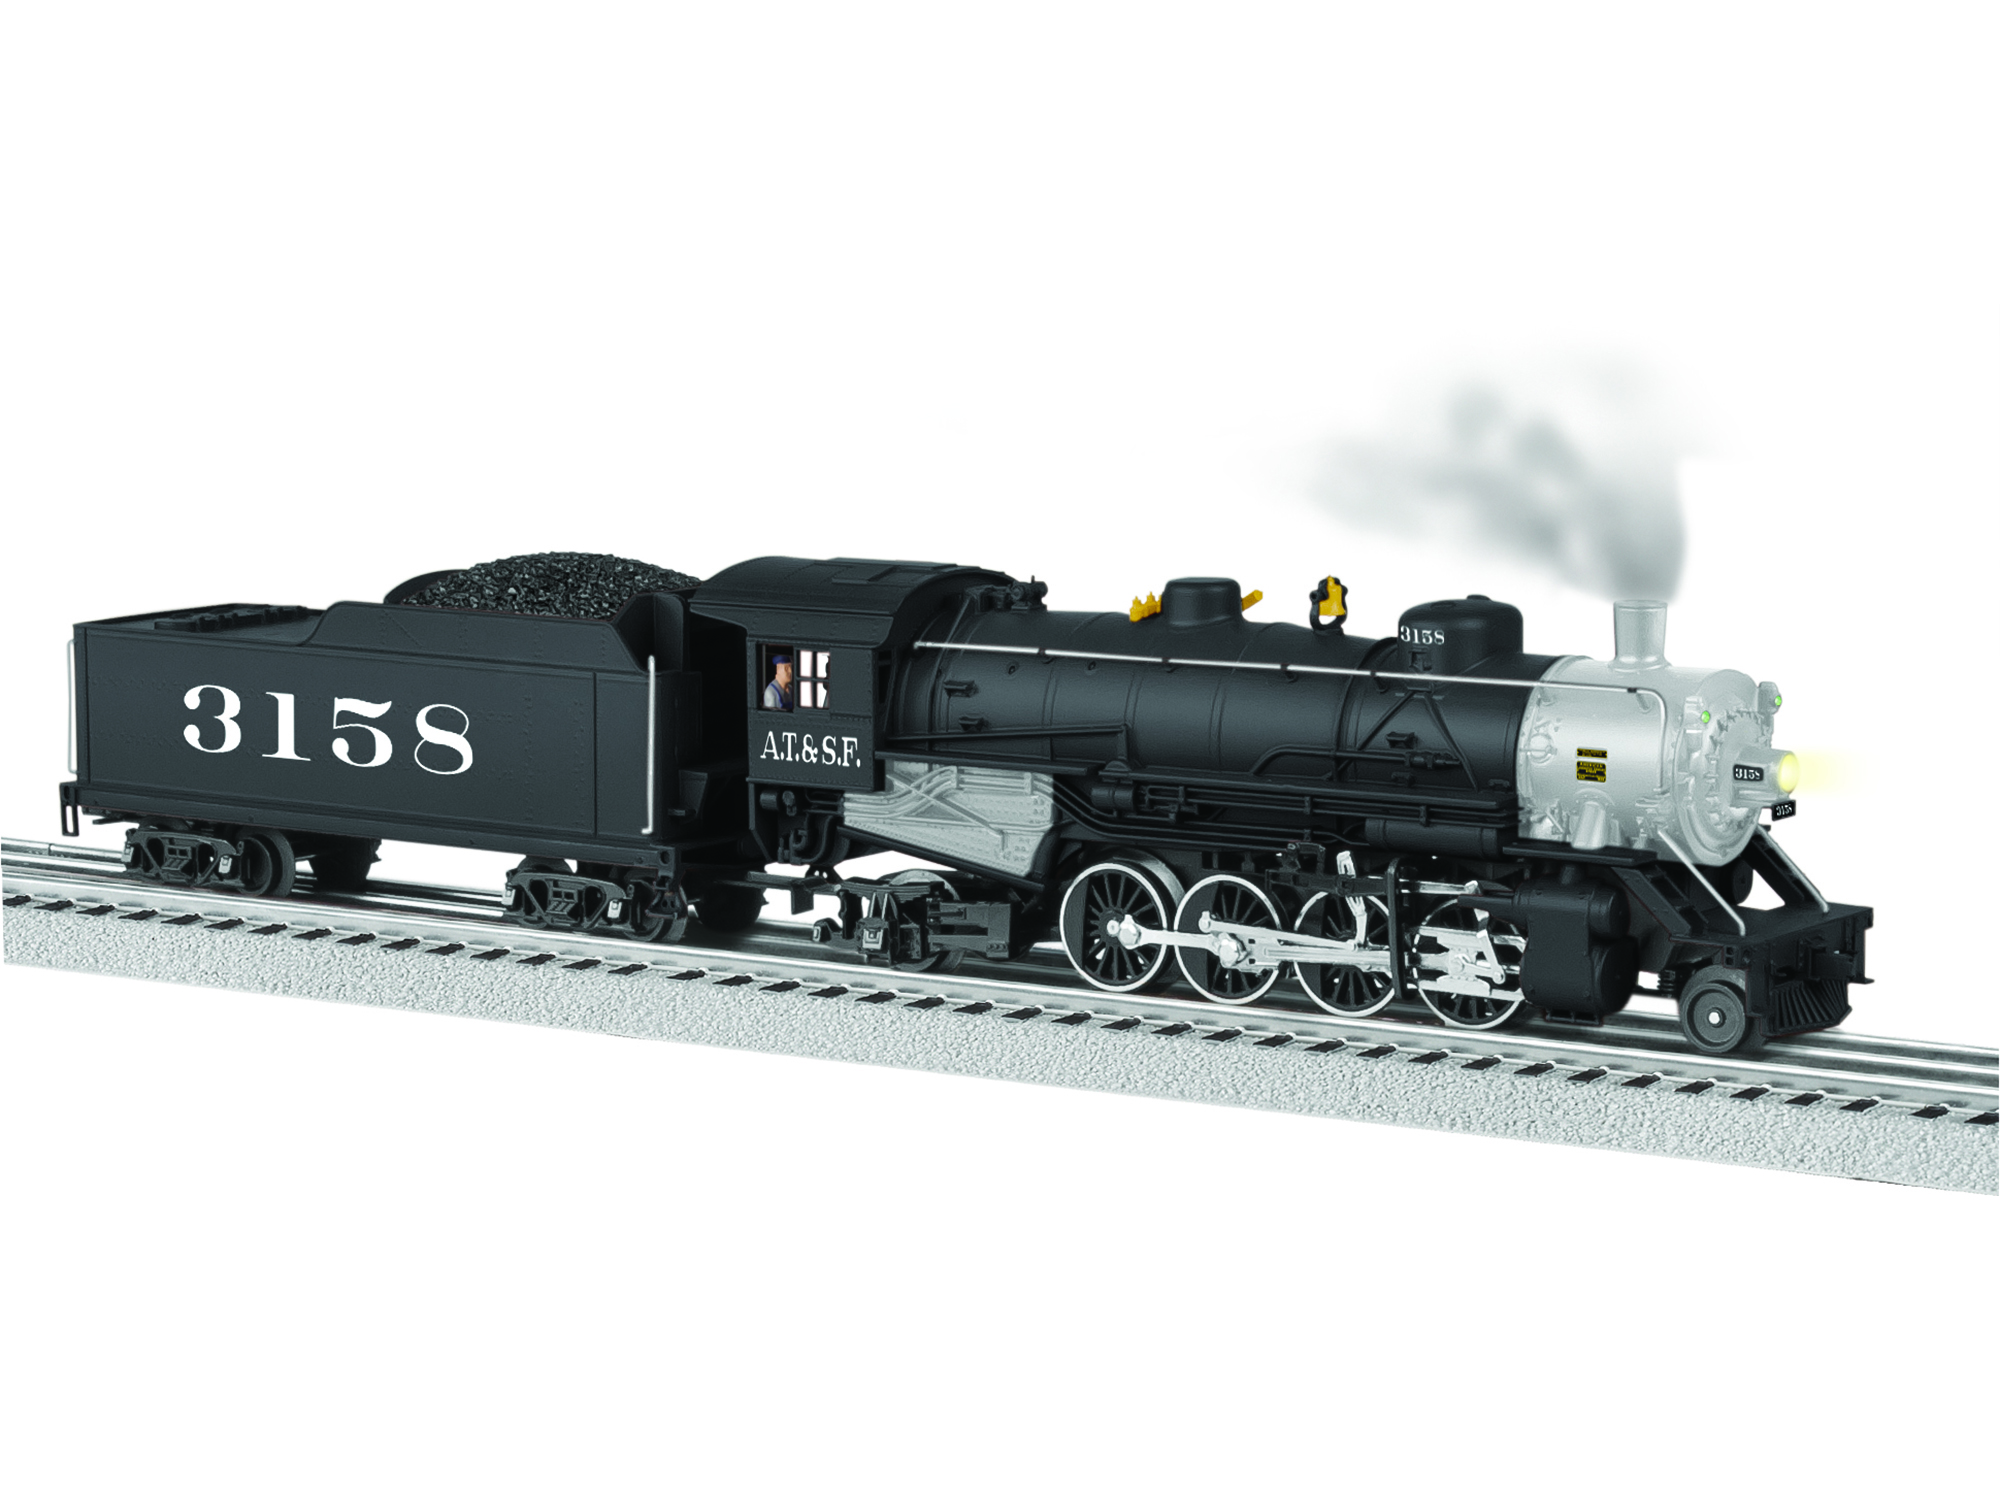 Locomotives: Model Train Engines & Locomotives at Lionel